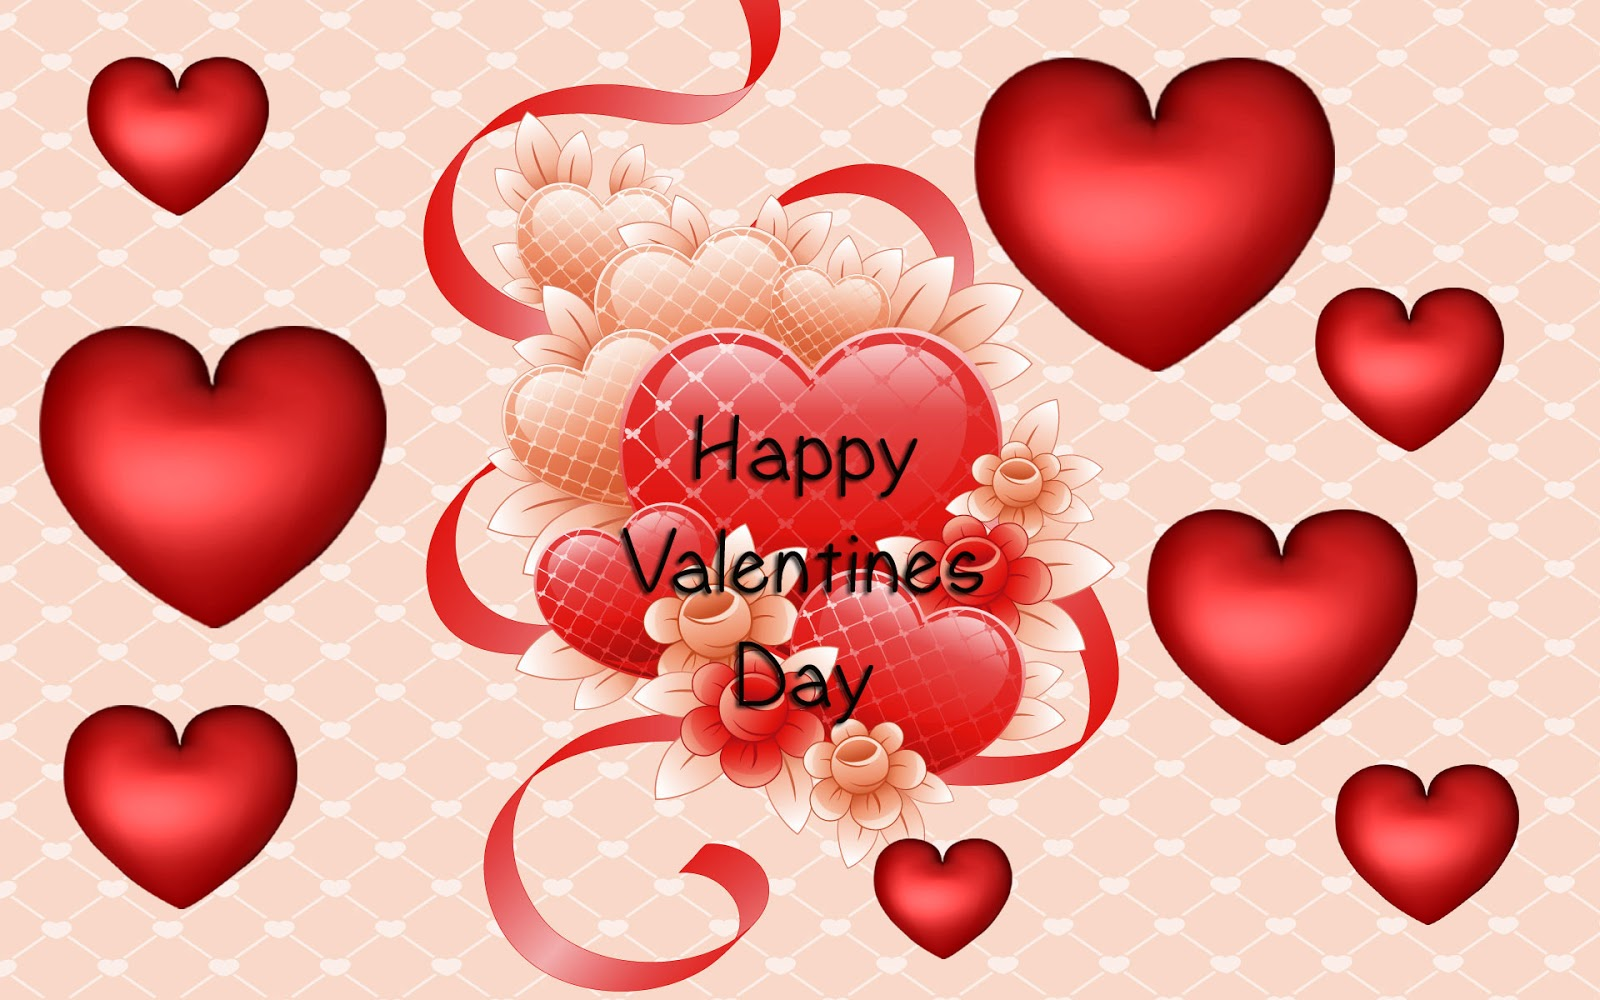 http://2.bp.blogspot.com/-sUOKvtXW_1s/UQ-Rs1vKpzI/AAAAAAAAJWY/WkUTbkiLKr8/s1600/valentines_day_wallpapers_wishes_greetings_loversday(www.picturespool.blogspot.com)_20.jpg